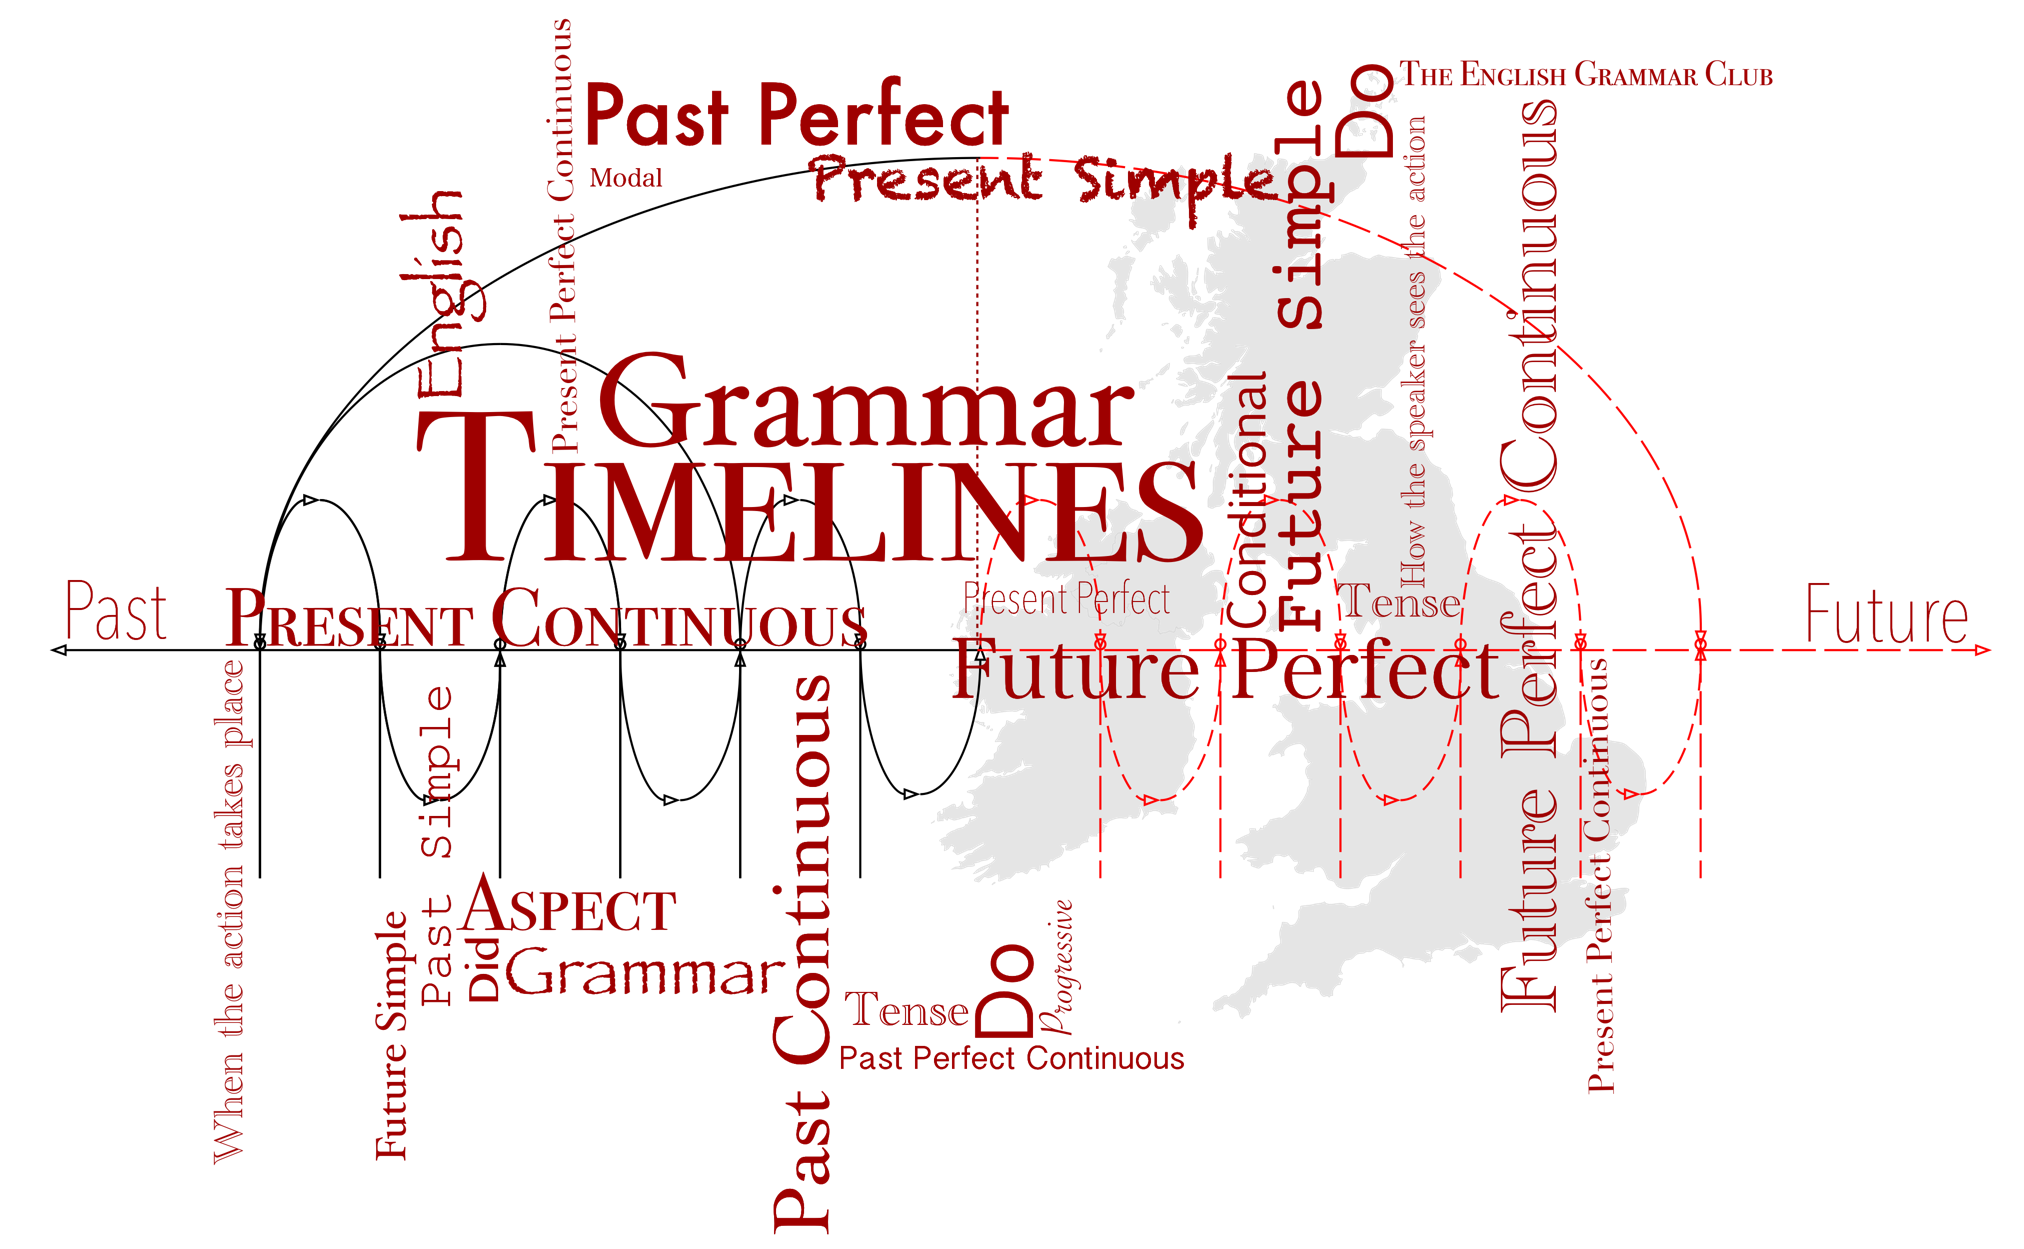 English Grammar Timelines